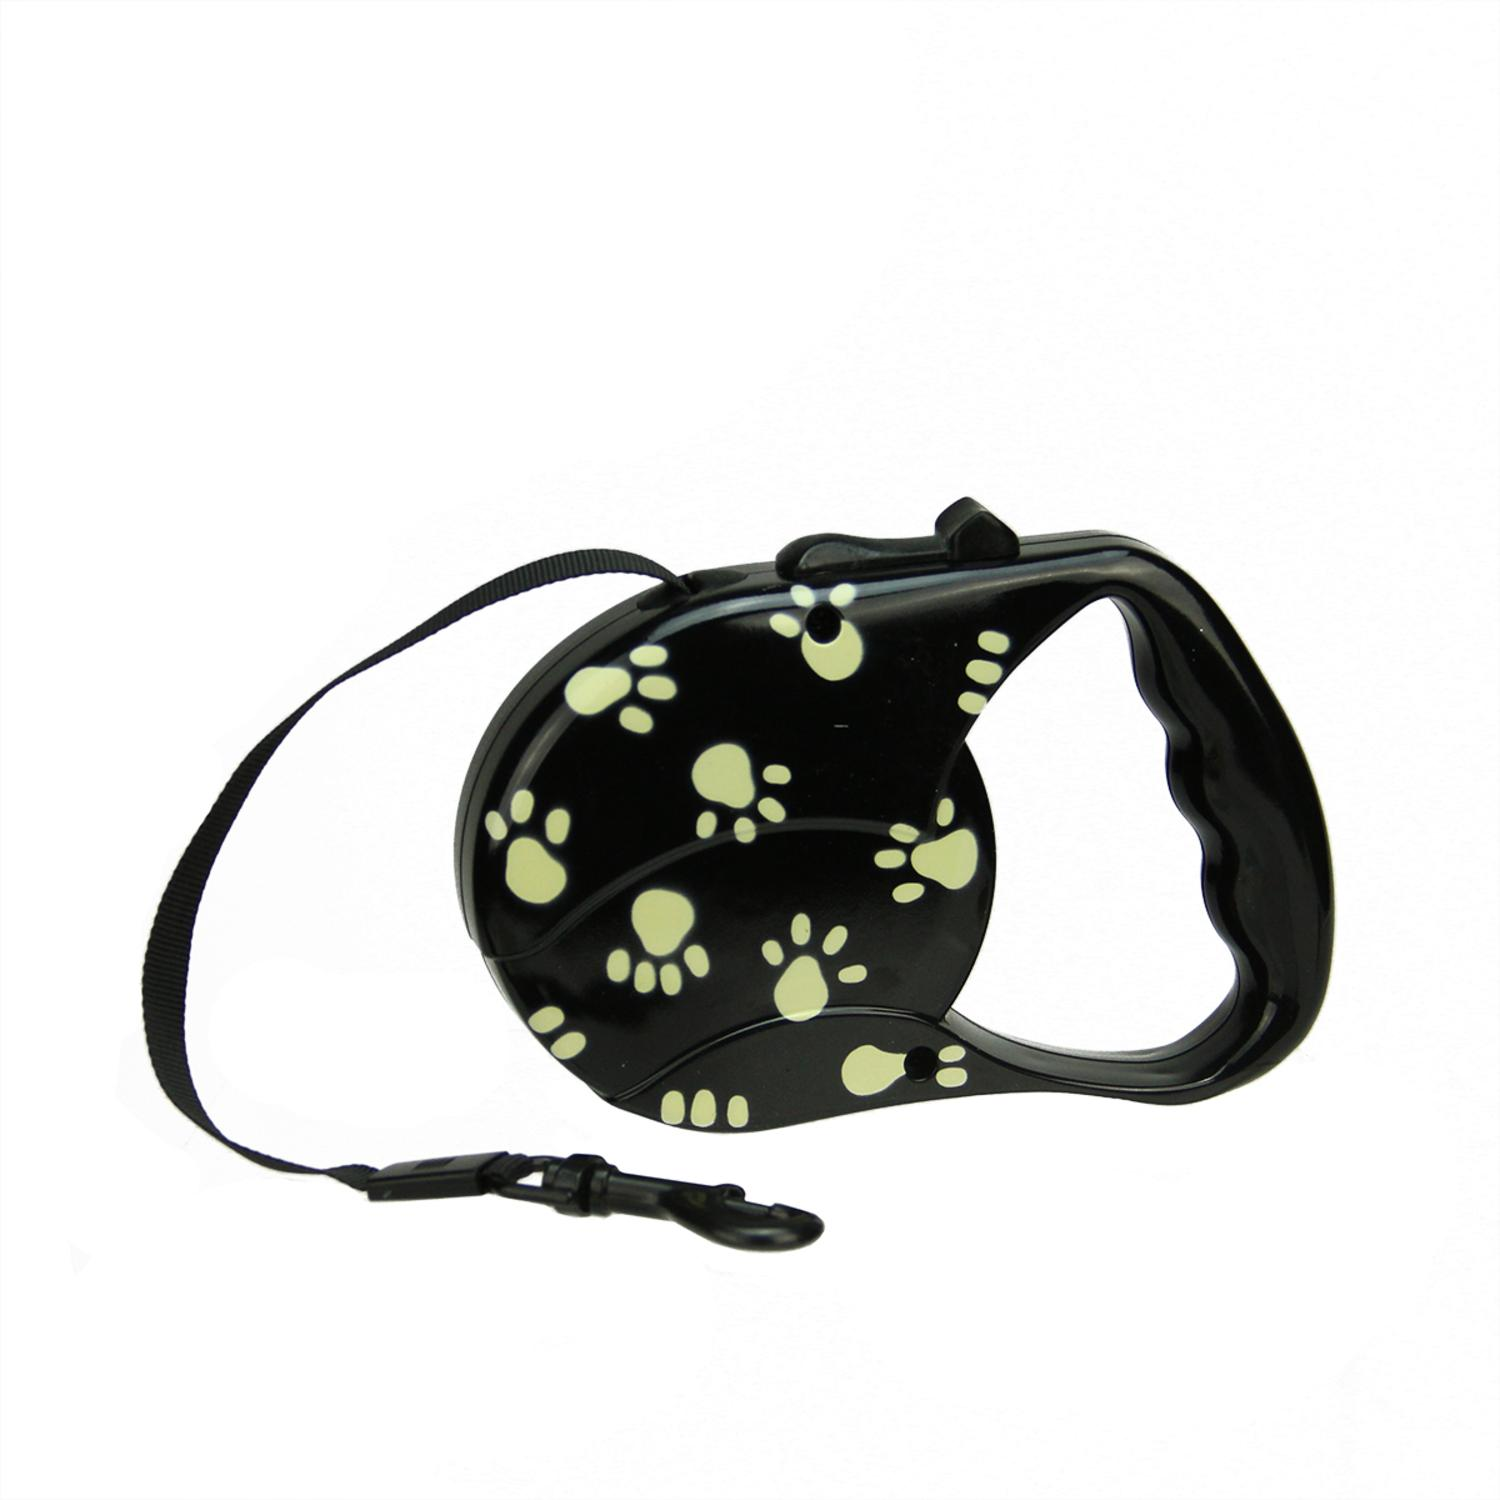 Black and Beige Paw Print Patterned Retractable Dog Leash - 33 Pound Limit